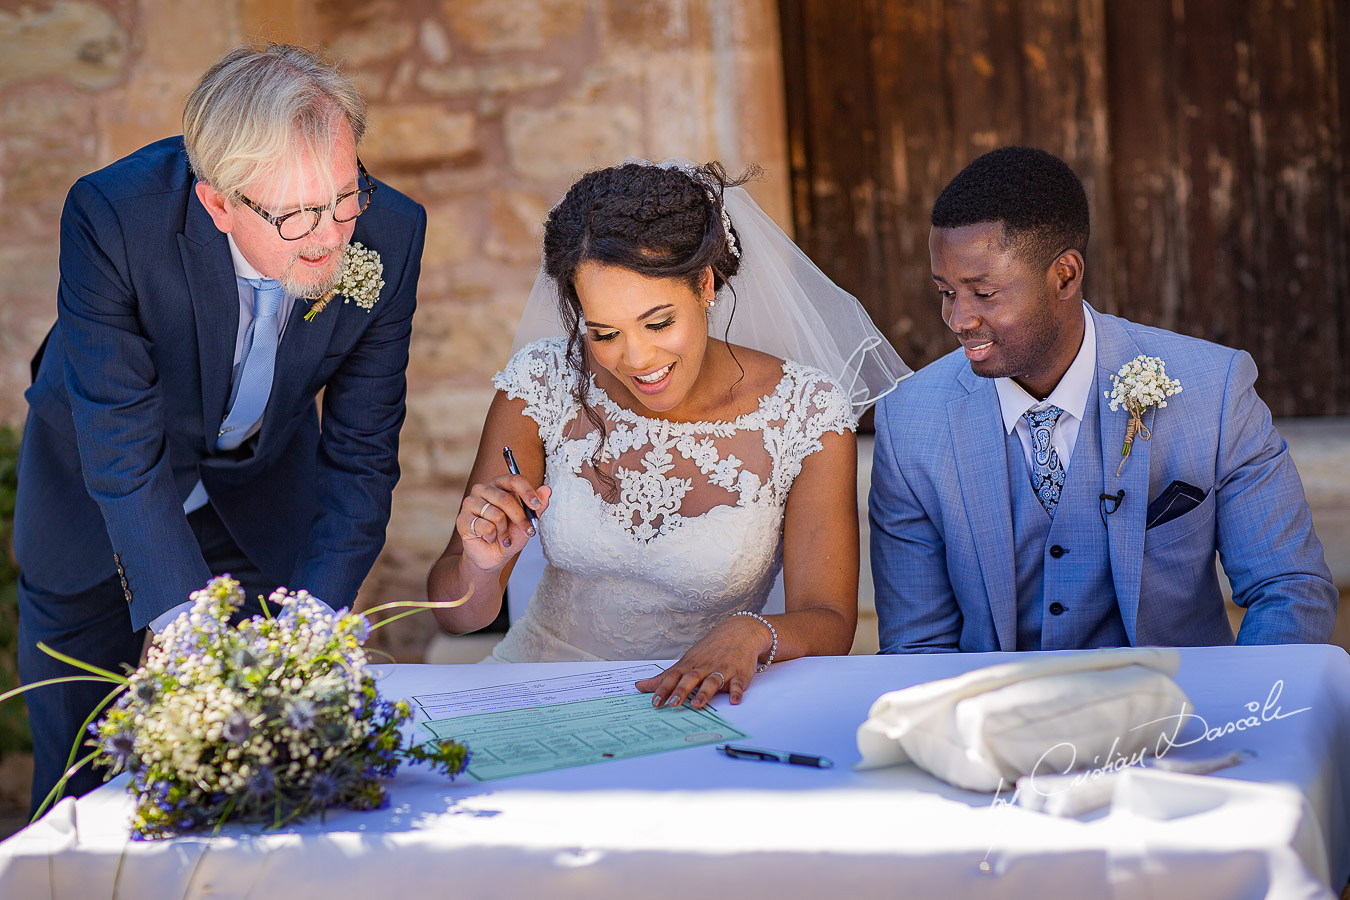 Bride and groom signing their wedding certificates, moments captured at a wedding at Minthis Hills in Cyprus, by Cristian Dascalu.